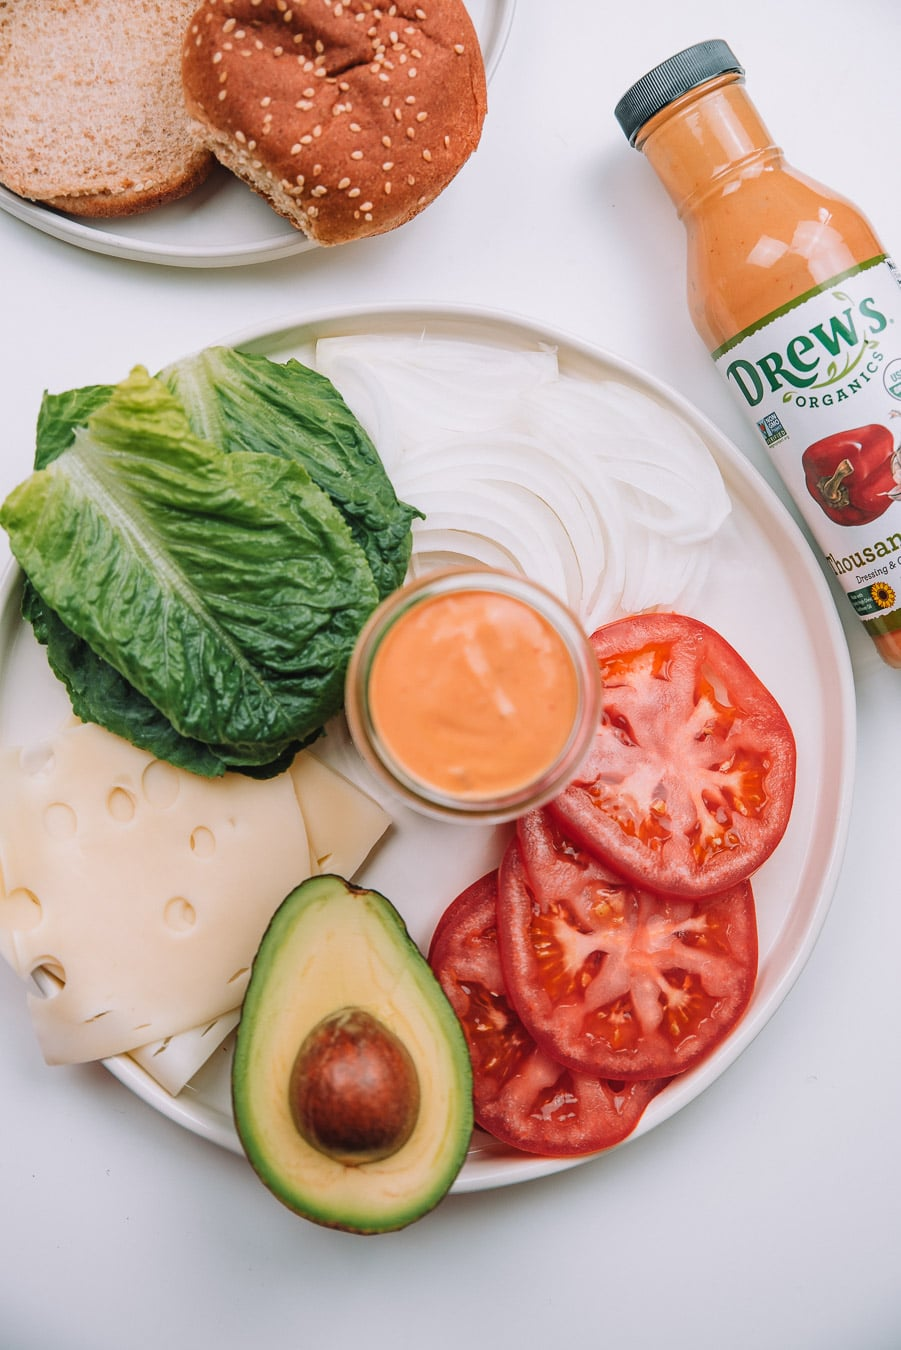 Tomatoes, onion, lettuce, cheese slices, avocado, and thousand island dressing on a plate with a bottle